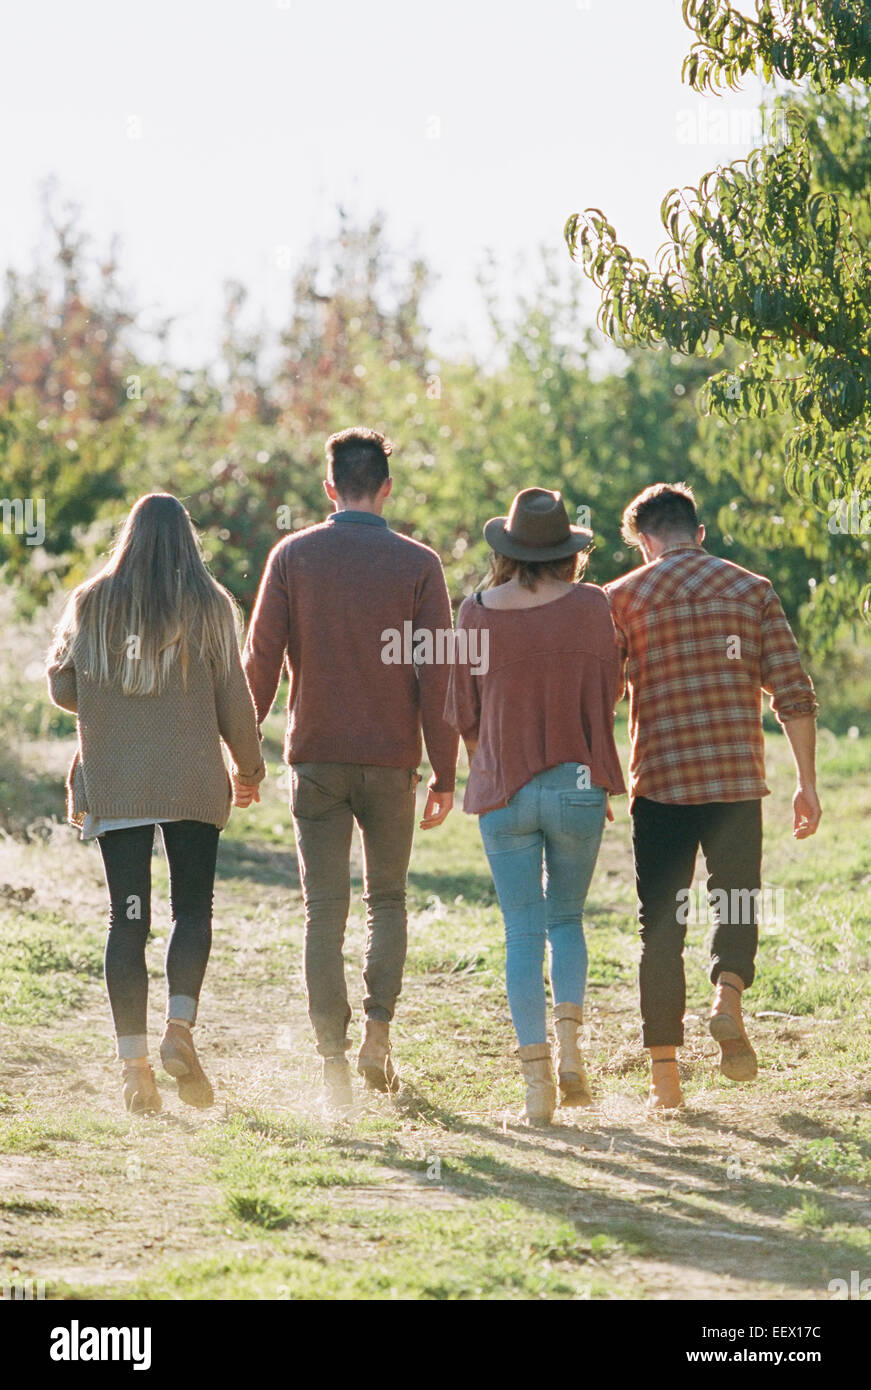 Apple orchard. Two couples walking along a path. - Stock Image